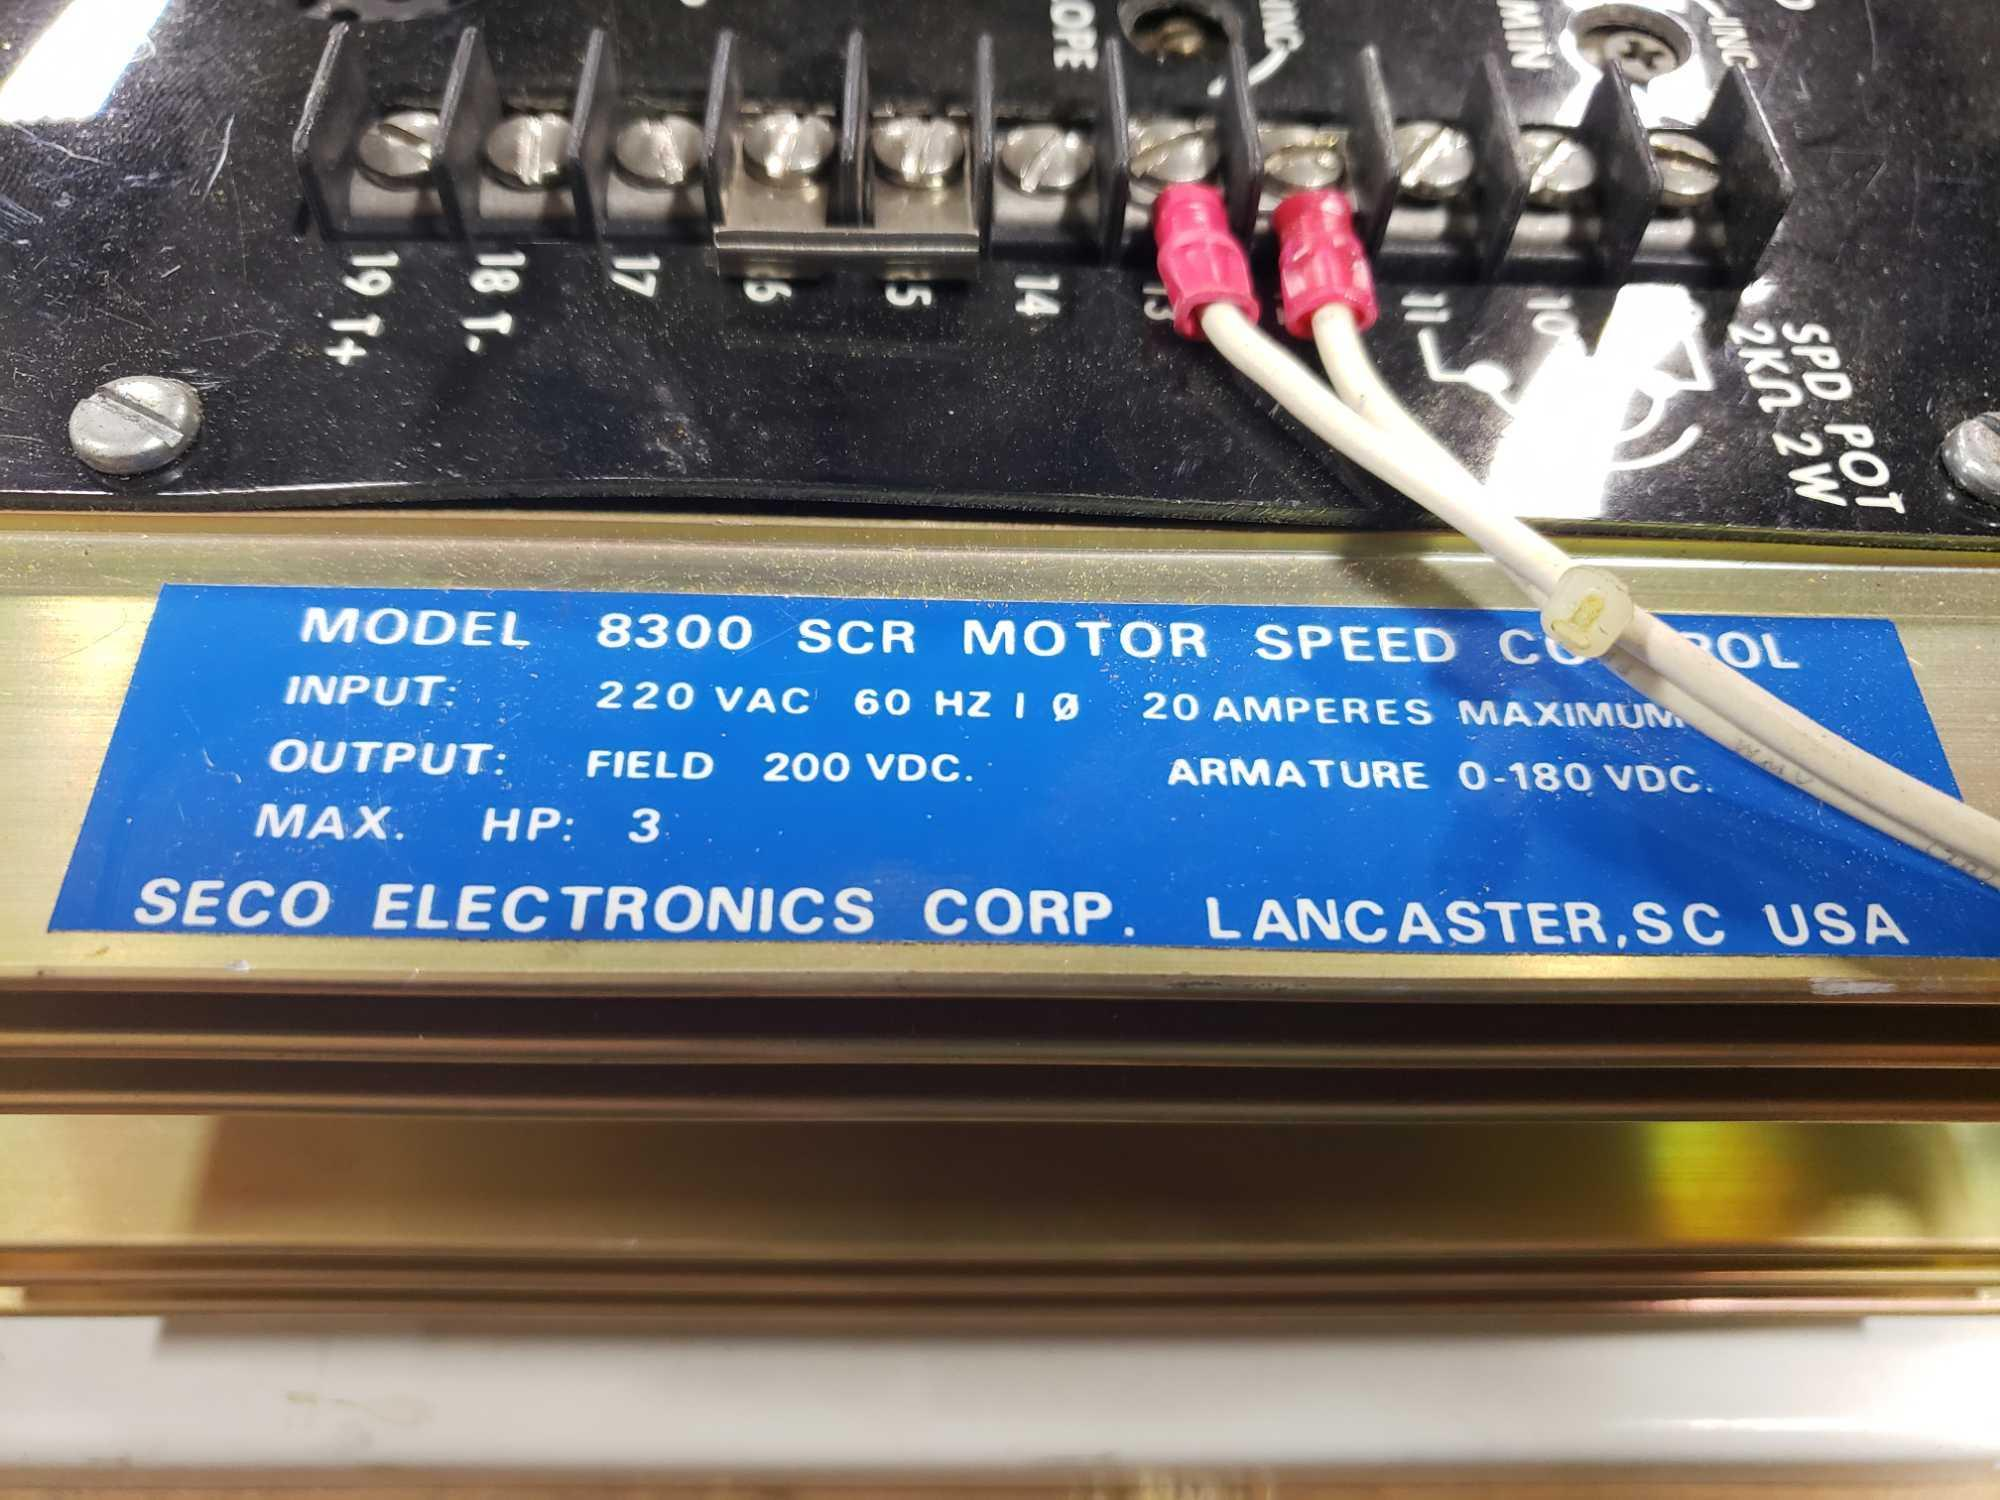 Seco Electronics model 8300 SCR motor control part 8304-N0.. New in box. - Image 3 of 4